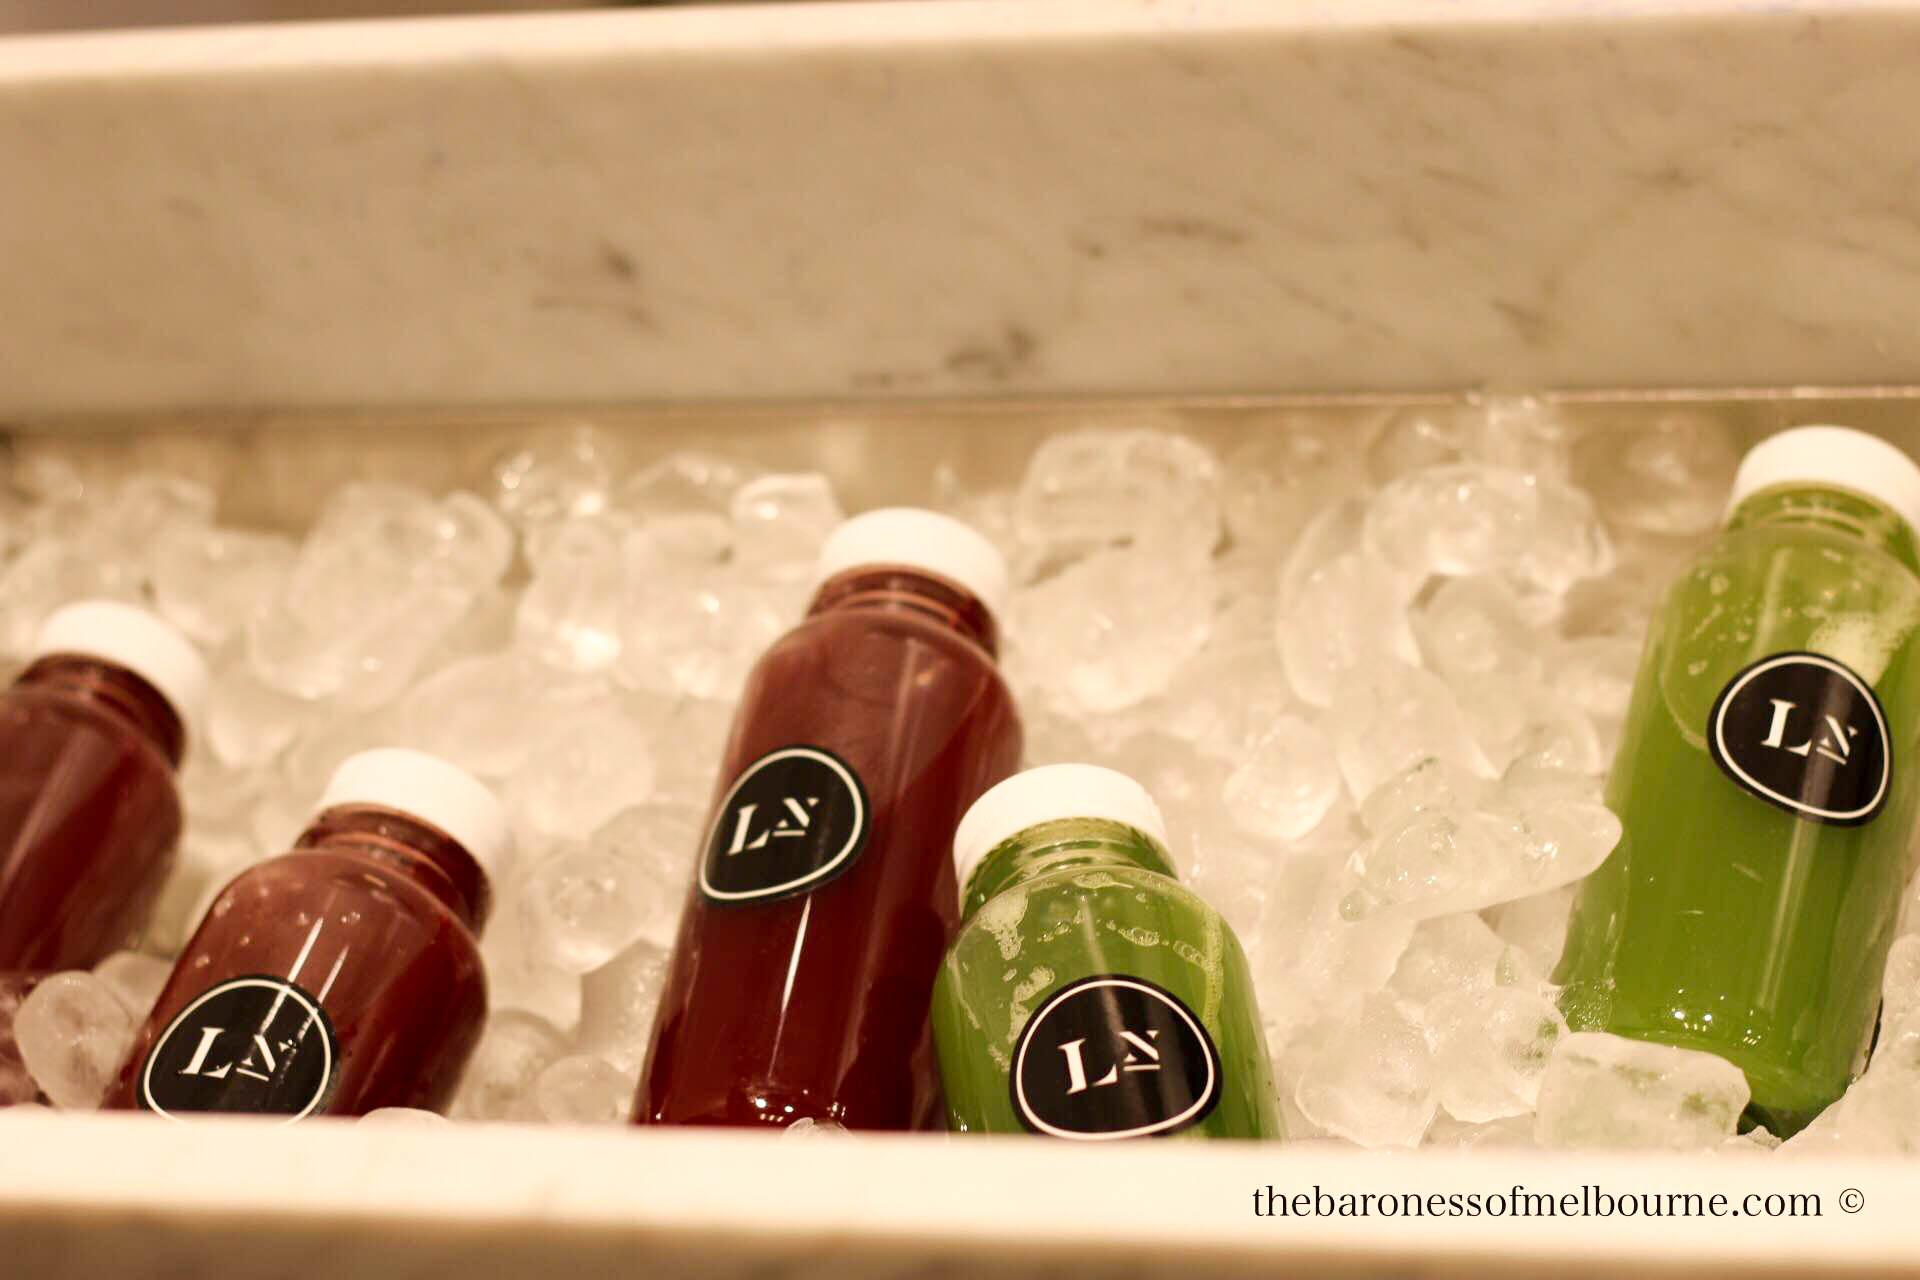 Cold pressed juices to grab on the go from $4.50